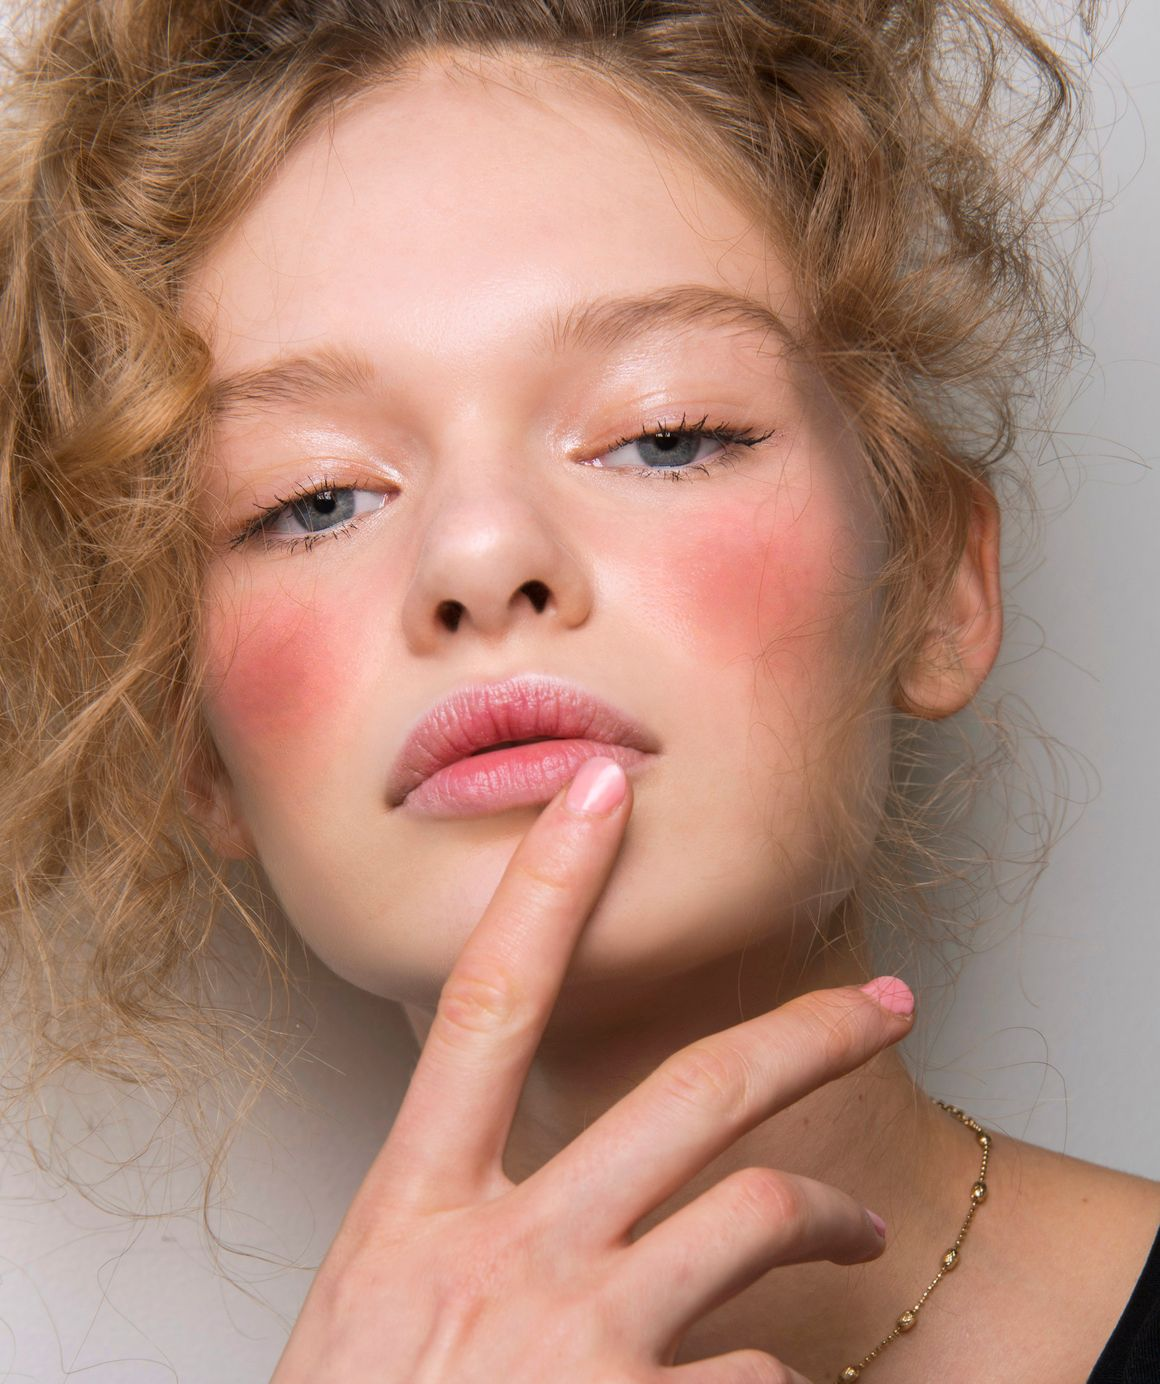 how to get rid of red spots on face overnight